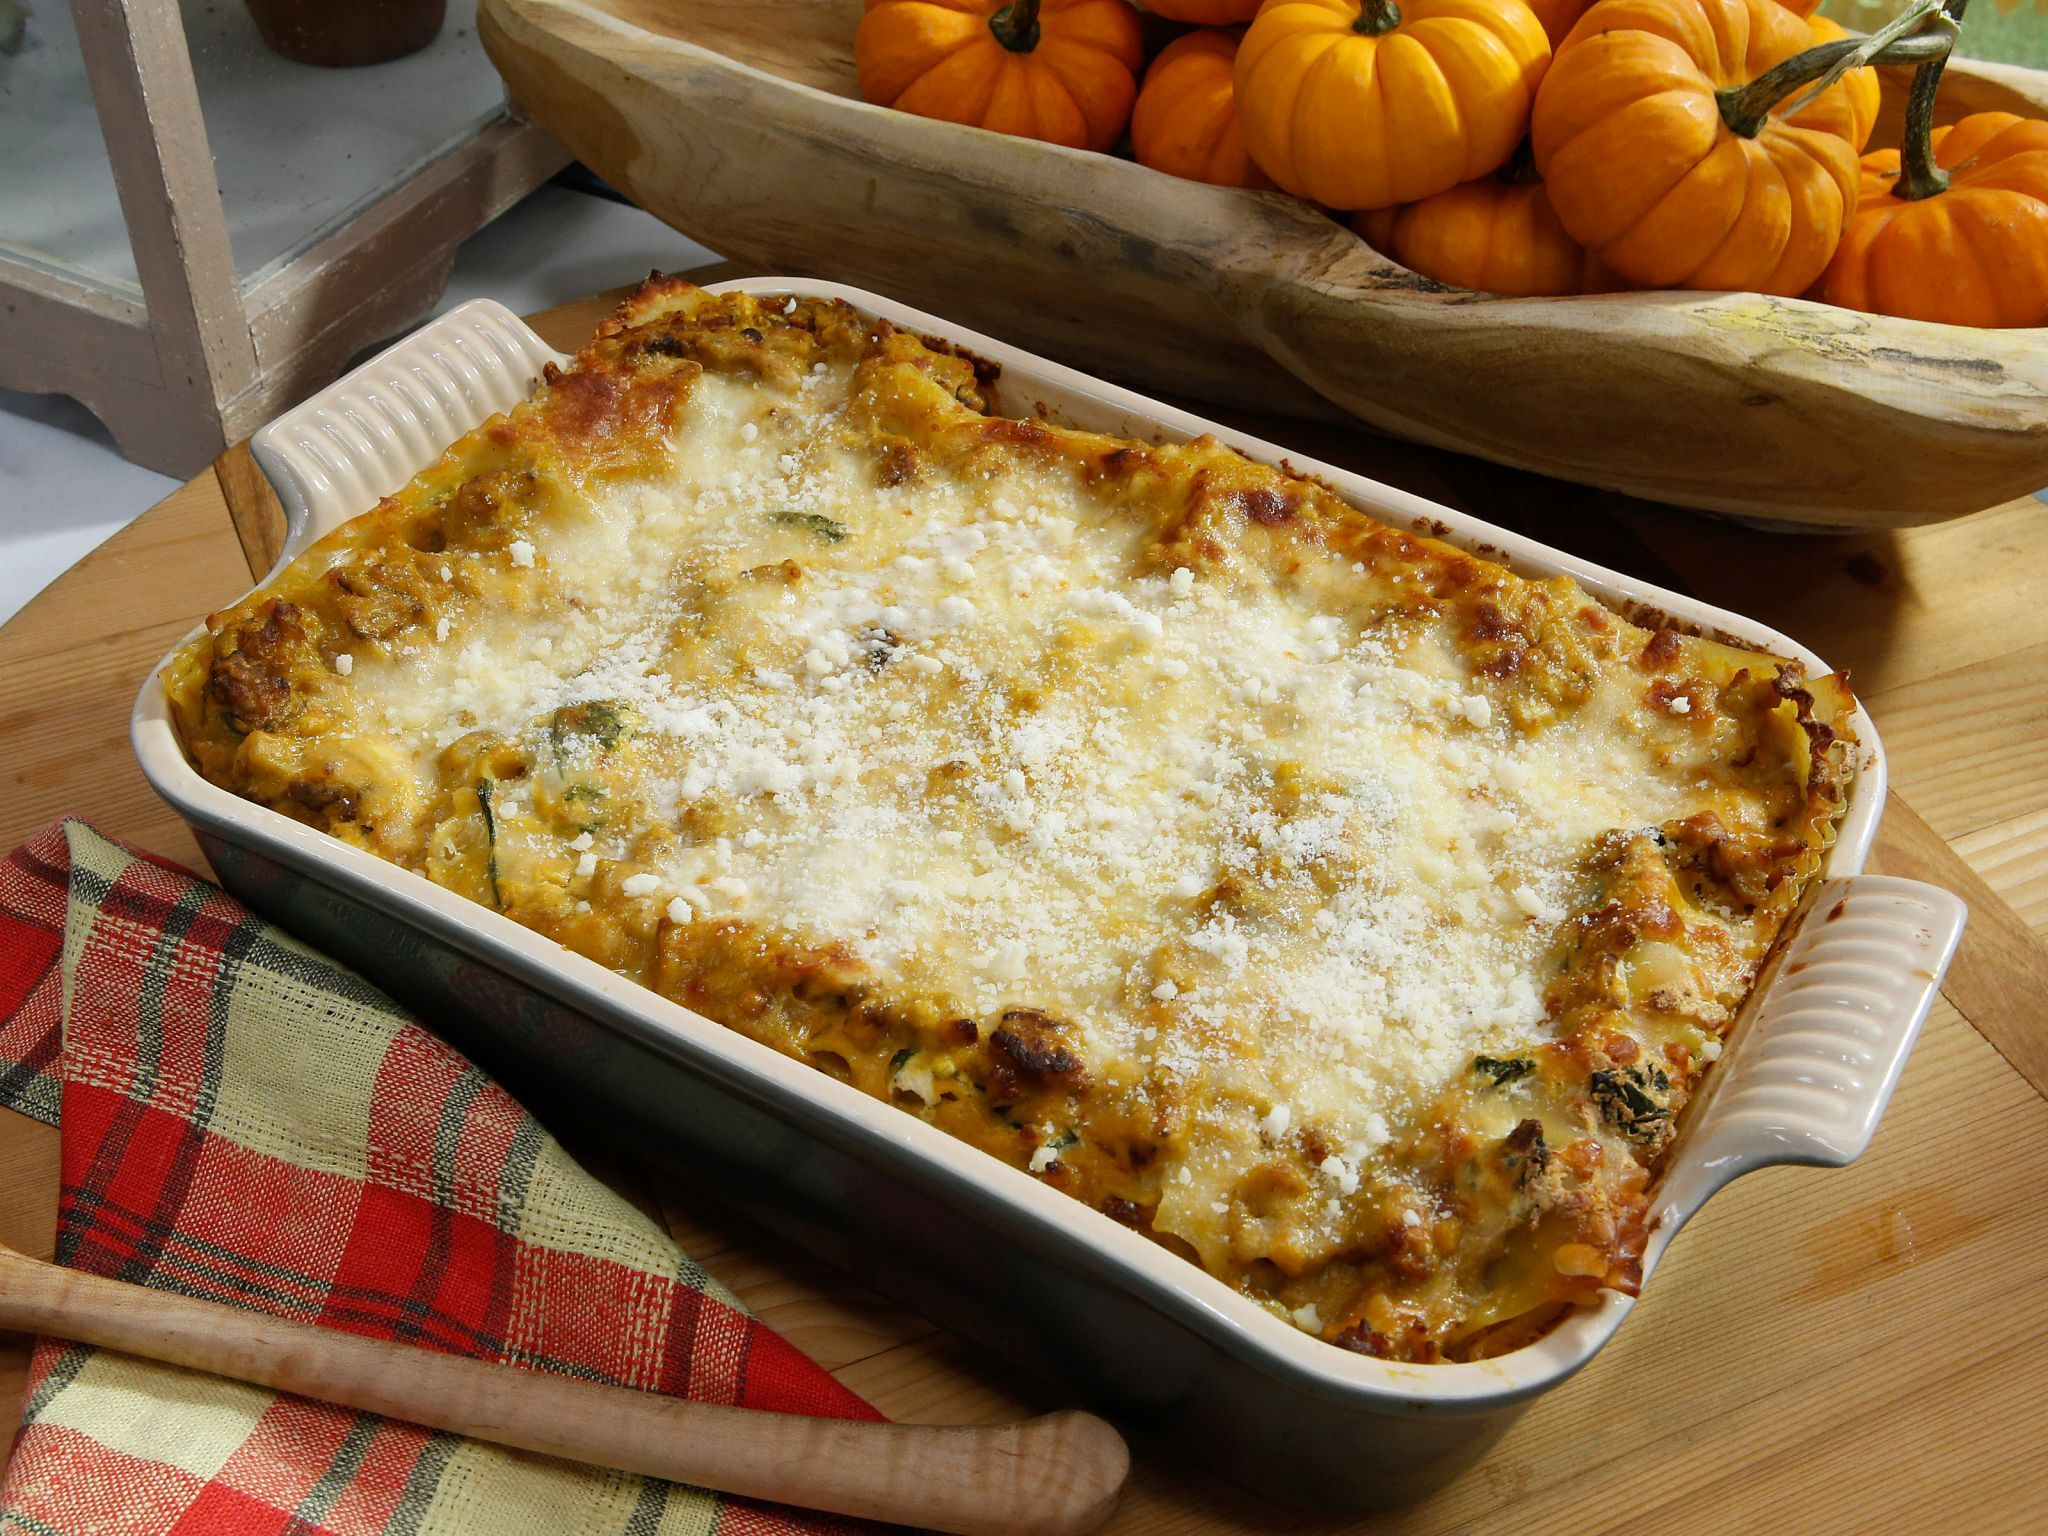 Butternut squash and sausage lasagna recipe sausage lasagna butternut squash and sausage lasagna forumfinder Gallery